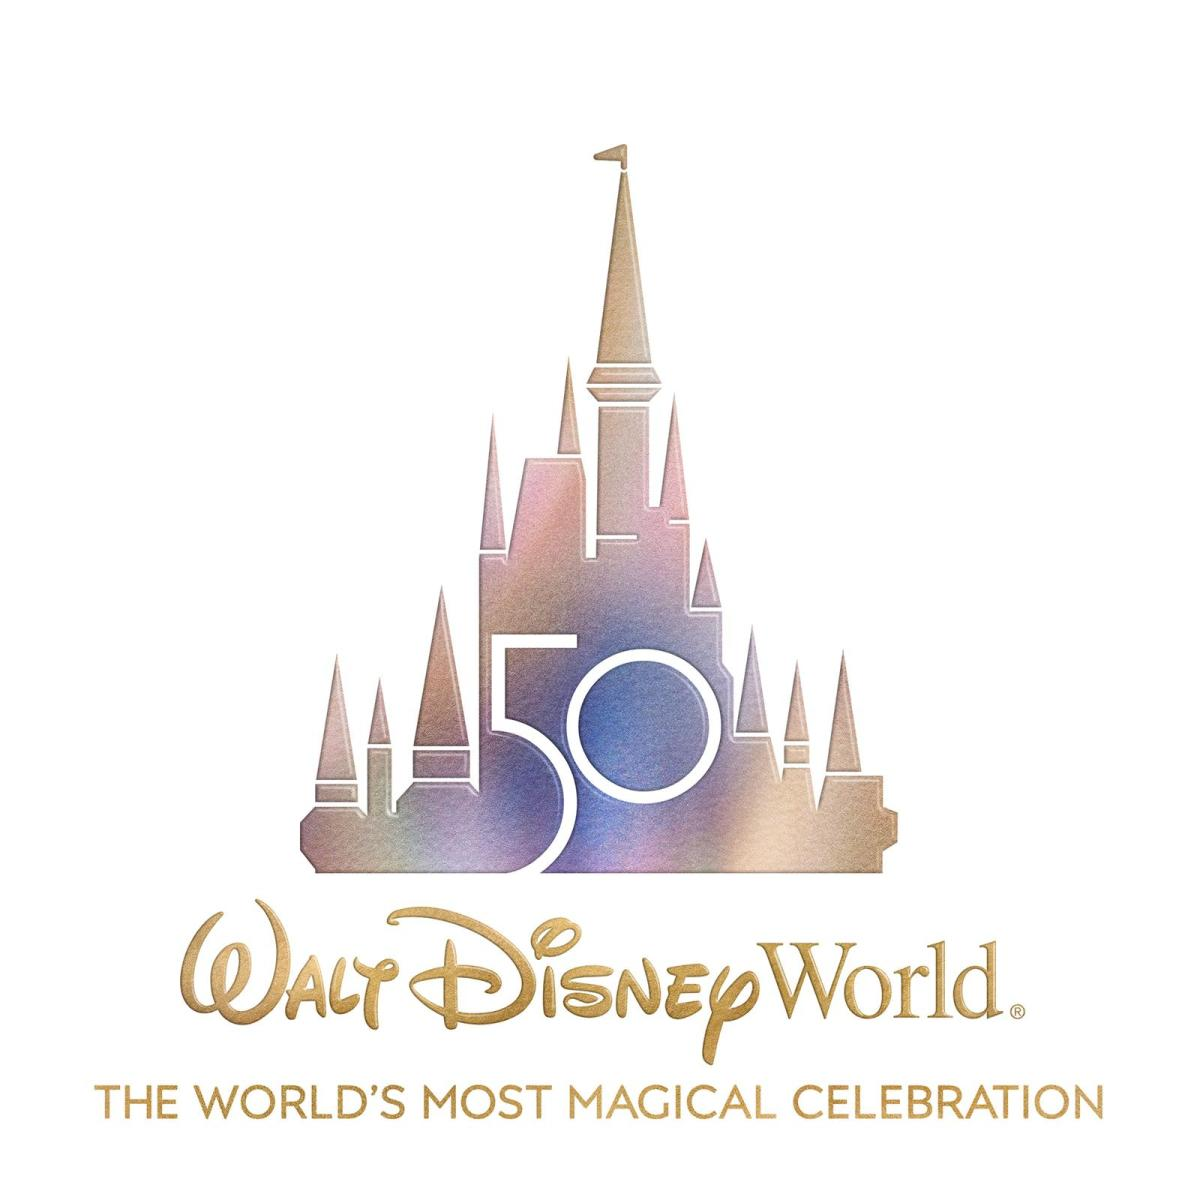 Walt Disney World Announces Initial Details for 50th Anniversary Celebration